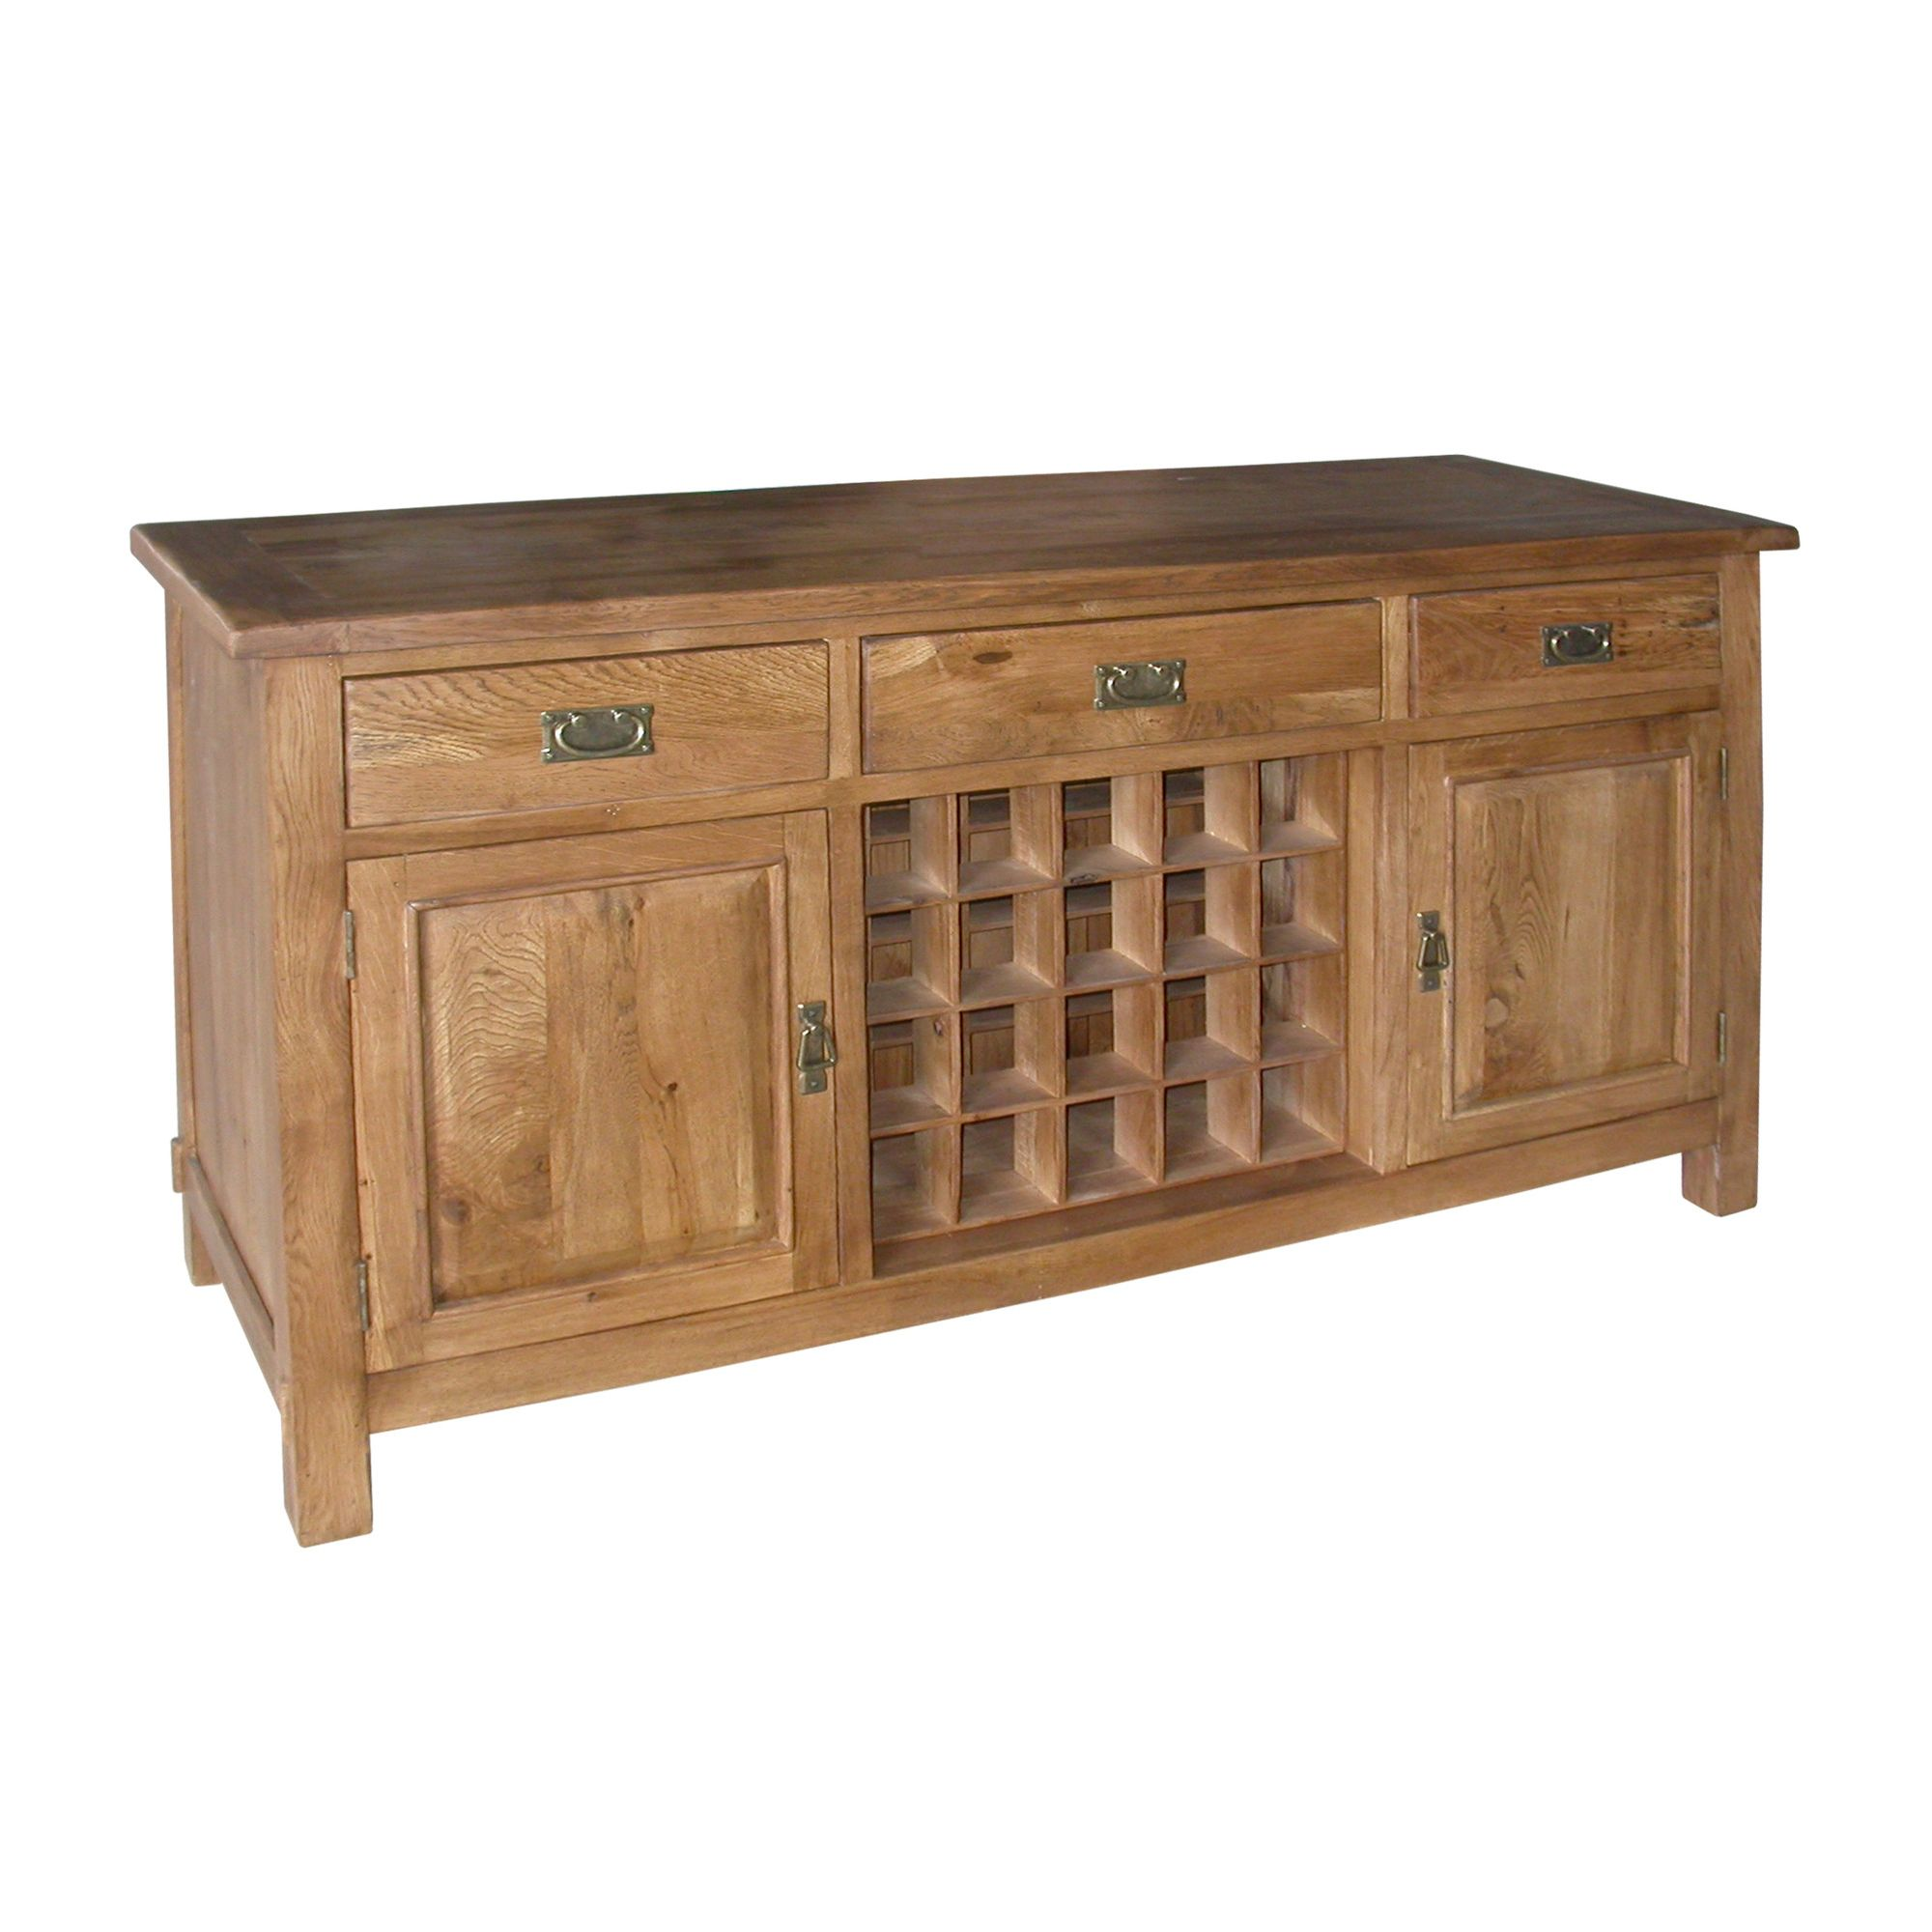 Wiseaction Riviera Medium Sideboard with Two Doors / Three Drawers at Tesco Direct